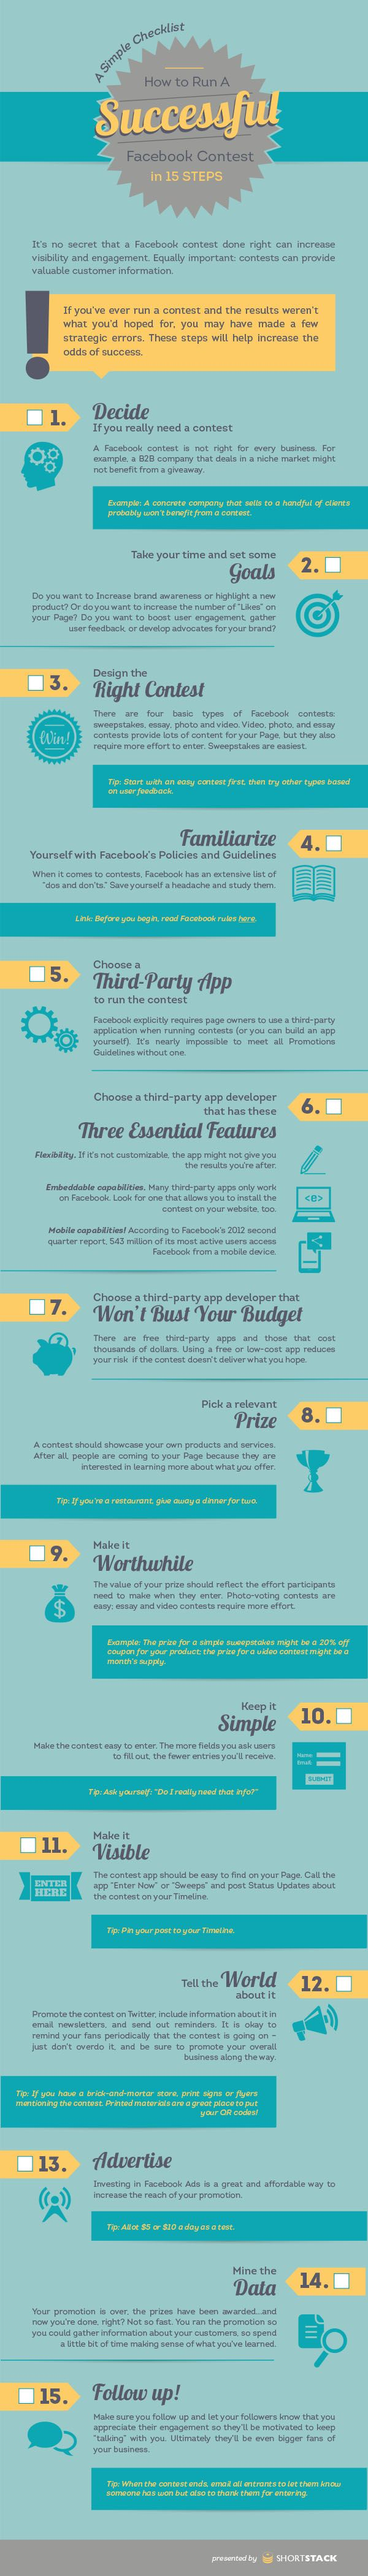 How to Run A Successful Facebook Contest #INFOGRAPHIC